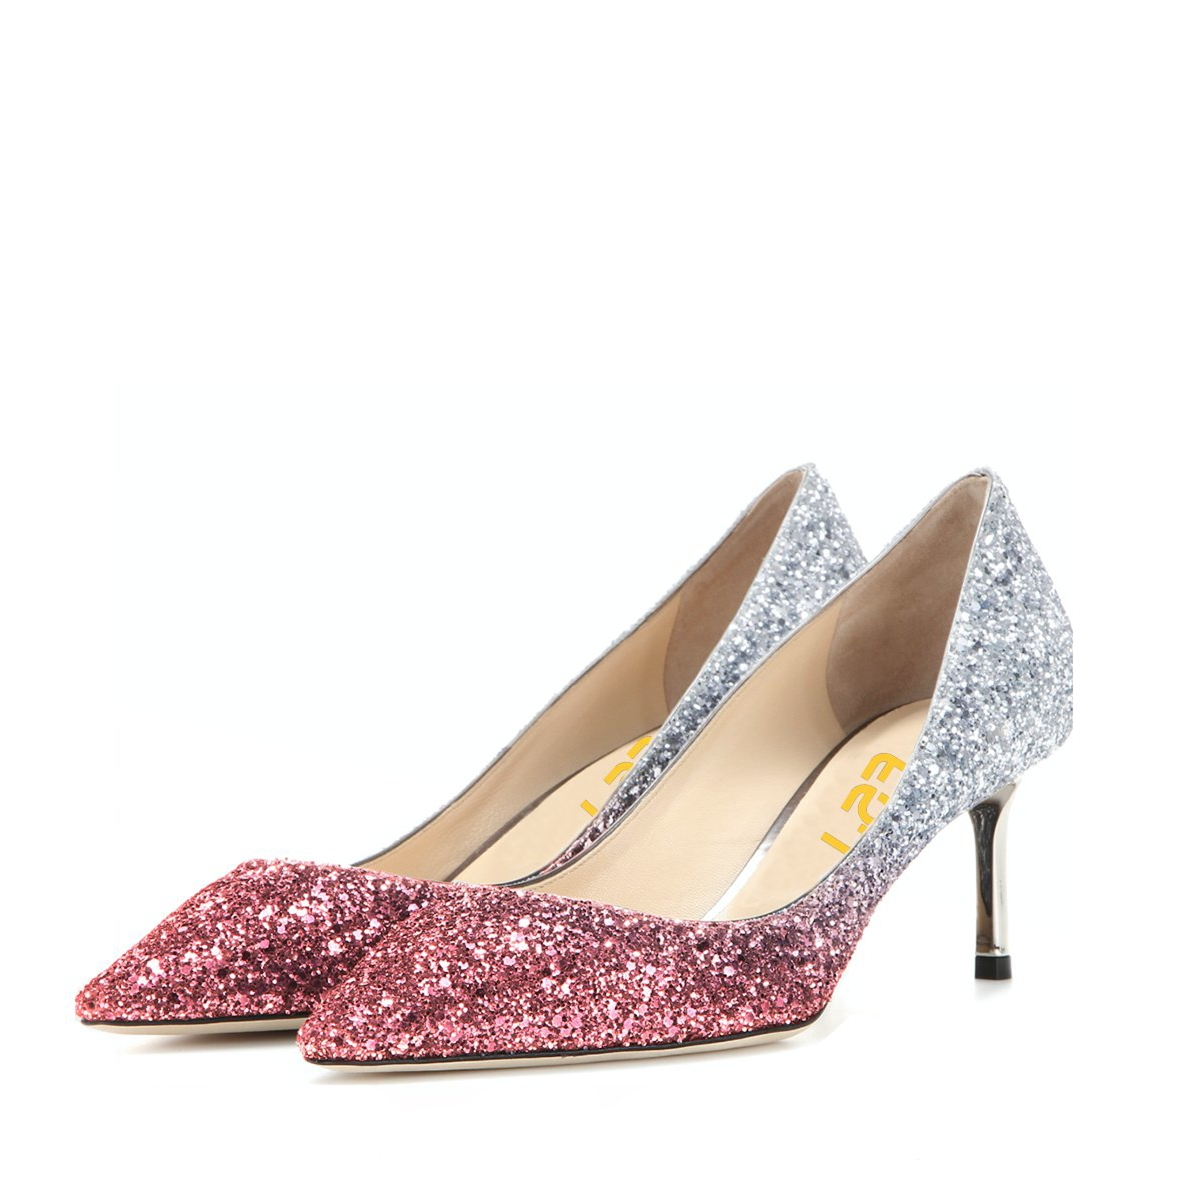 Pink and Silver Bridal Heels Sparkly Pointy Toe Glitter Kitten Heels Pumps